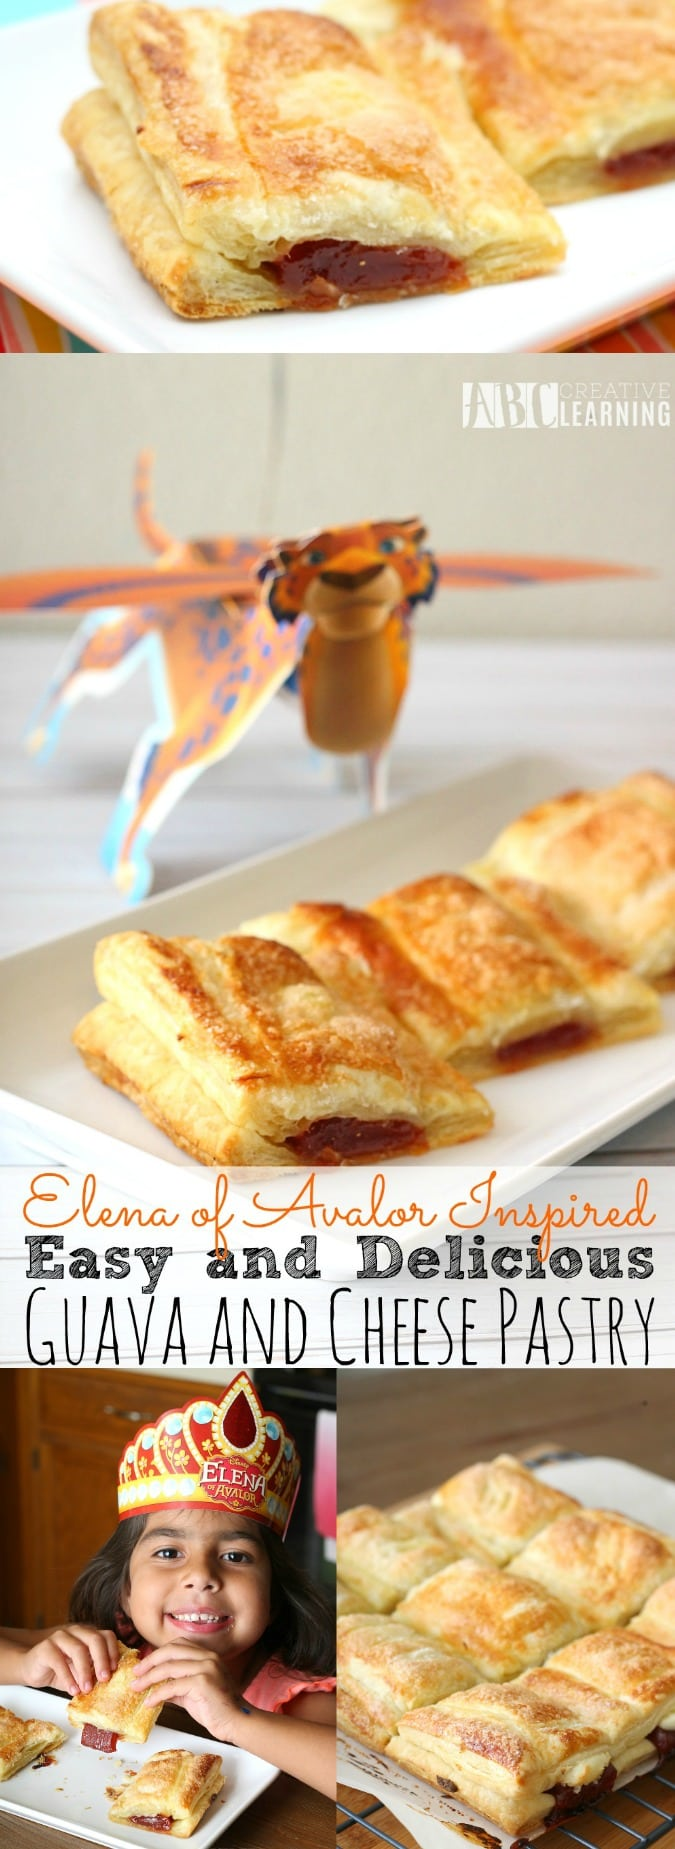 Elena of Avalor Inspired Guava and Cheese Pastry